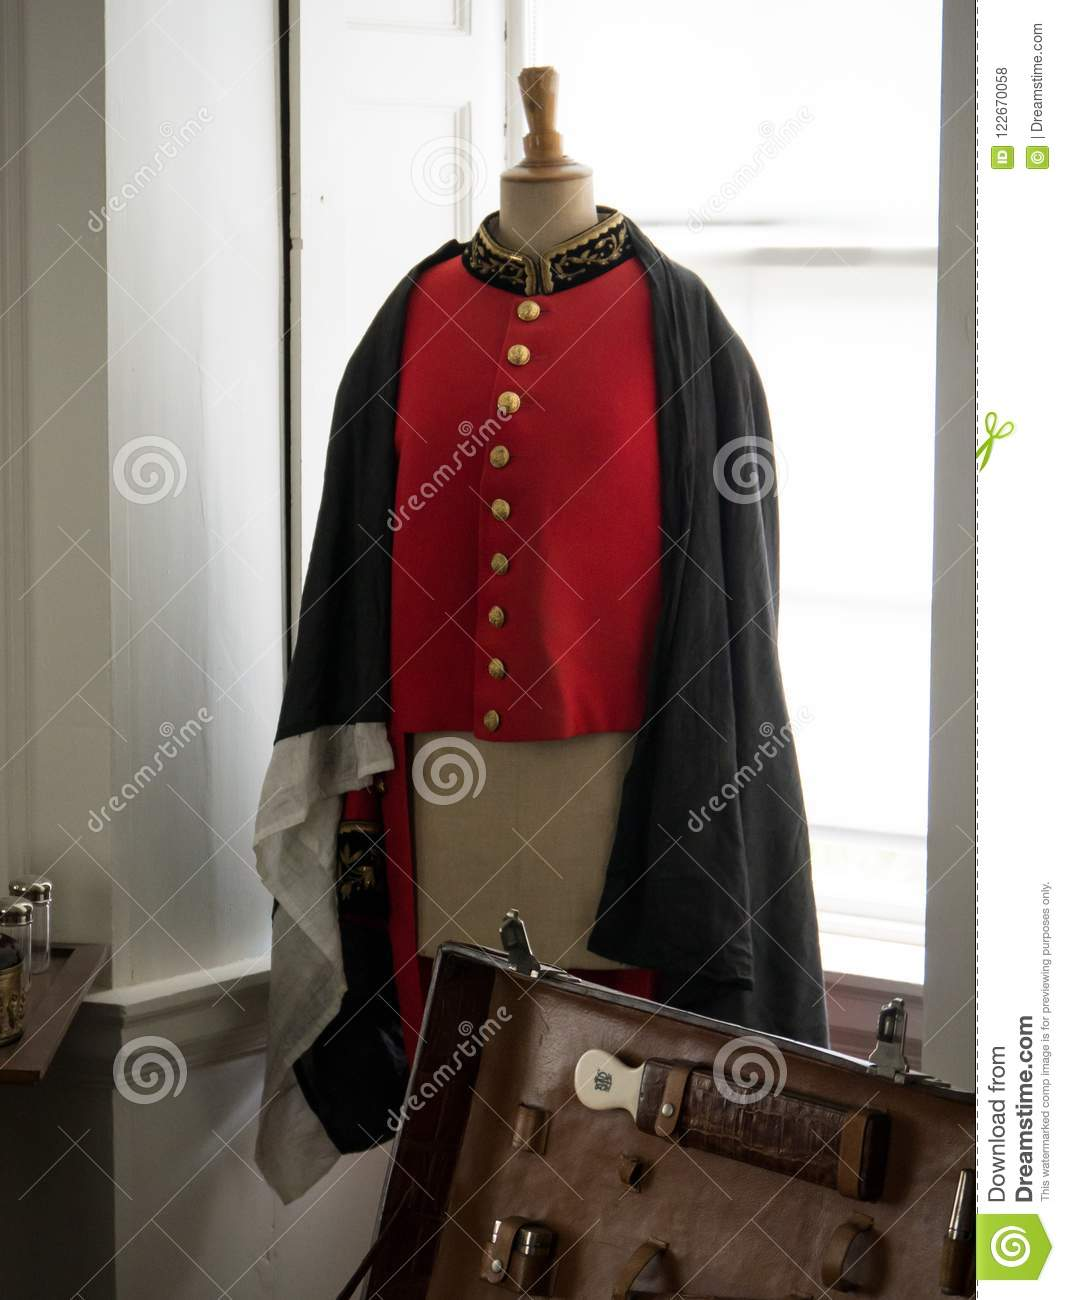 Old 19th Century Red British Military Uniform Jacket With